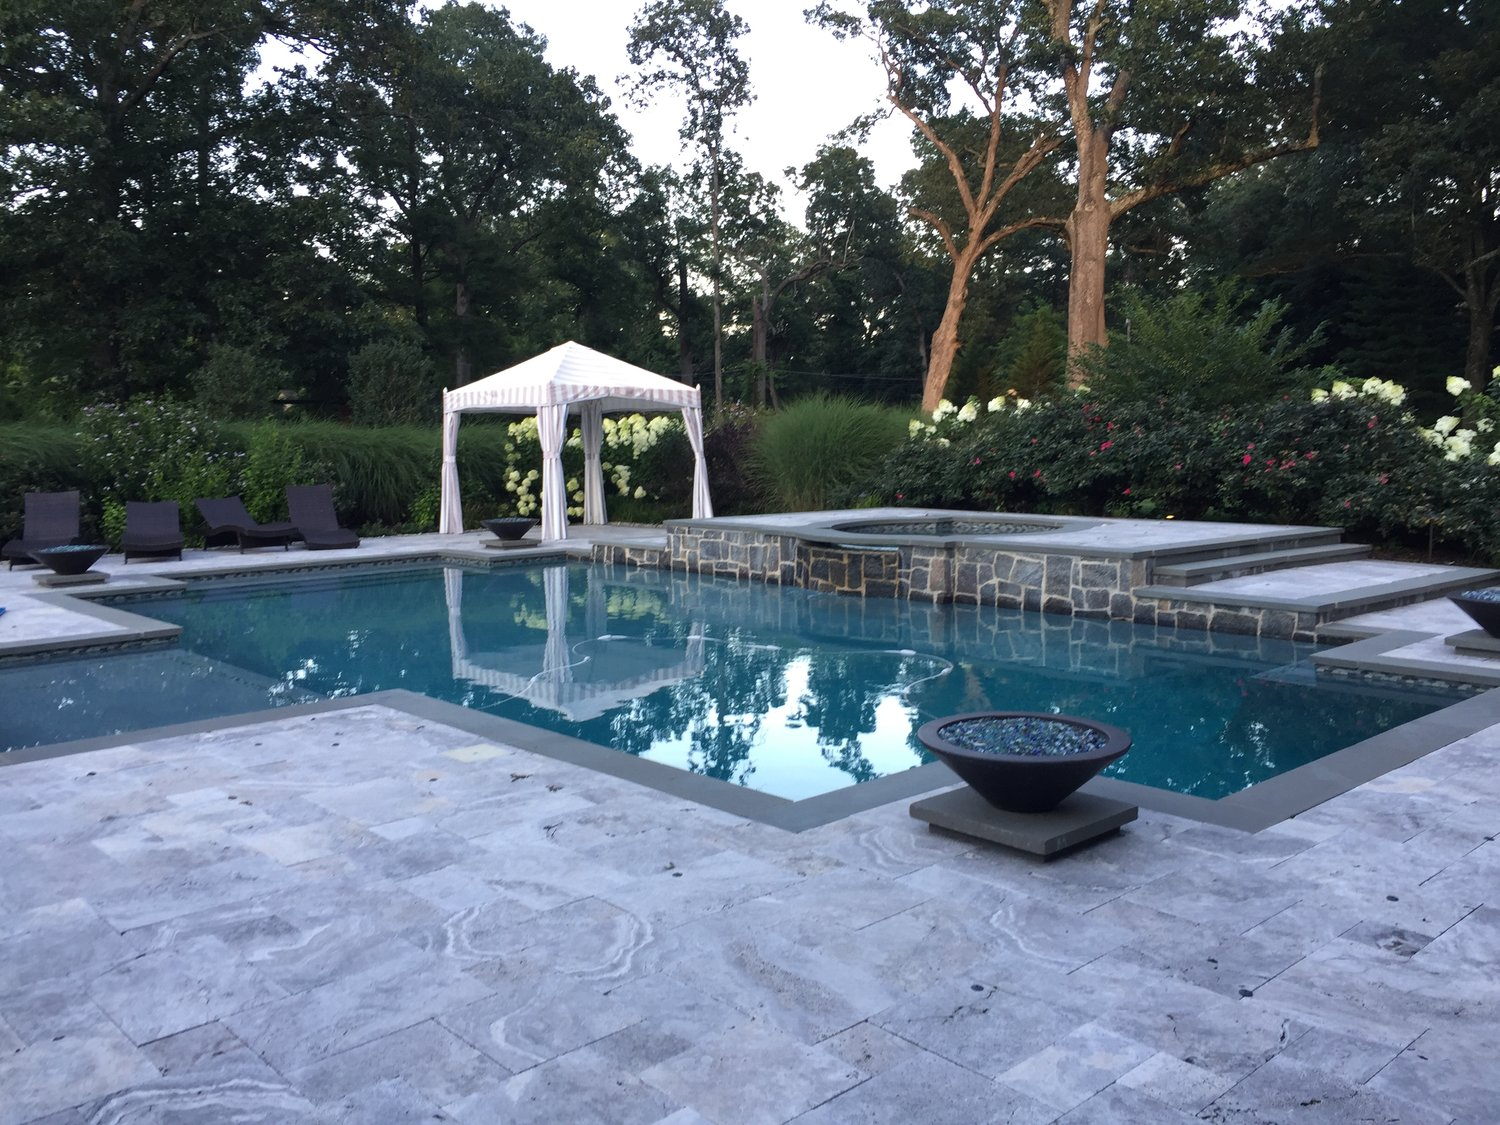 Morristown Transitional - 20' x 44' pool - sun shelf - raised quatrofoil spa - sheer descent waterfalls - blue stone coping - travertine patio - granite raised beam wall - hatteras gray hydrazzo plaster finish - fire bowls - LED lighting